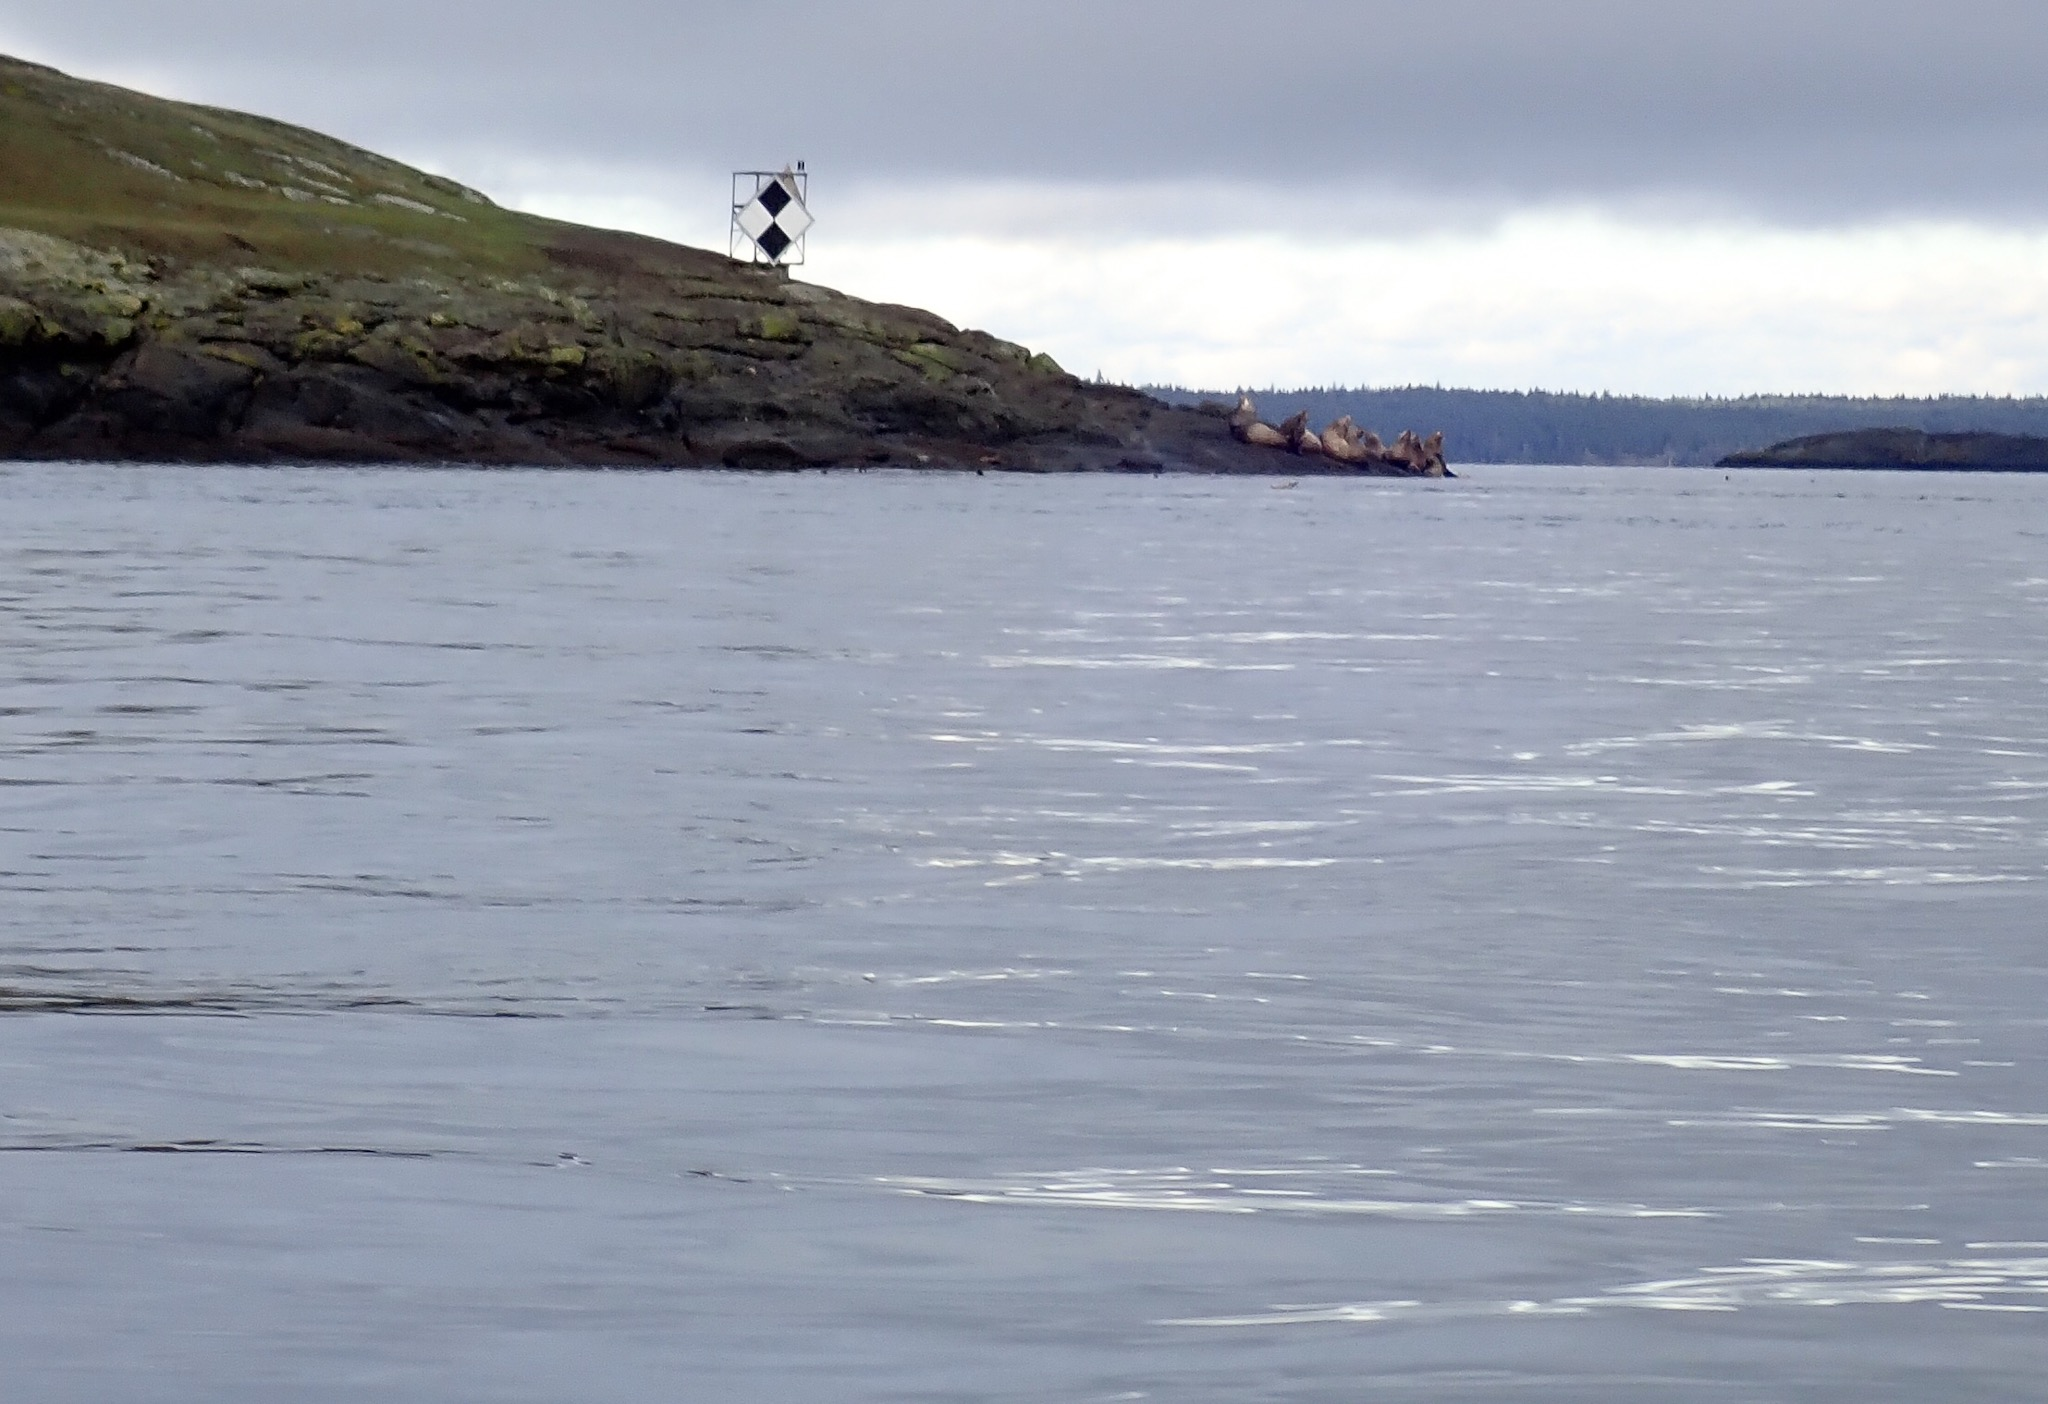 Noisy sea lions on the tip of Spieden Island.